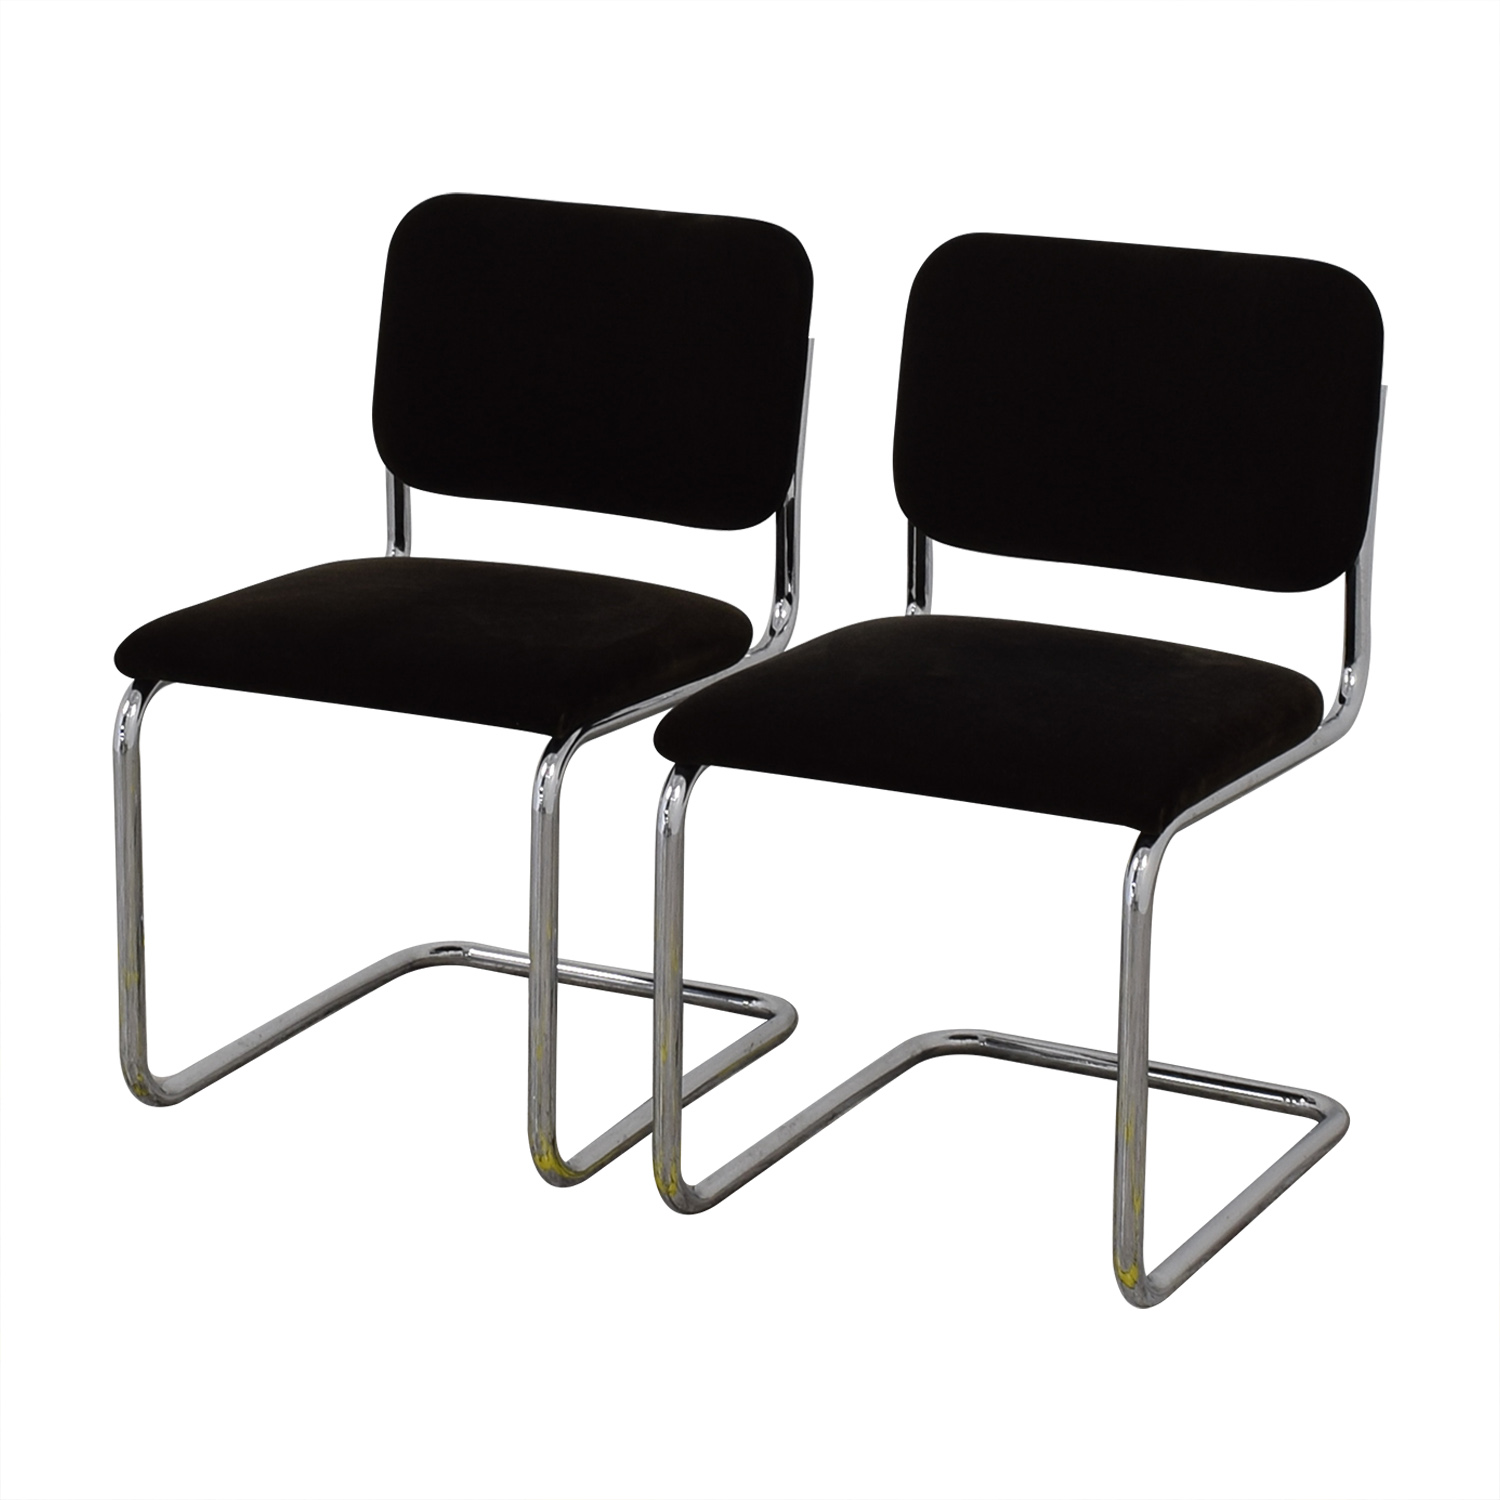 Knoll Knoll Marcel Breuer Cesca Chairs Dining Chairs